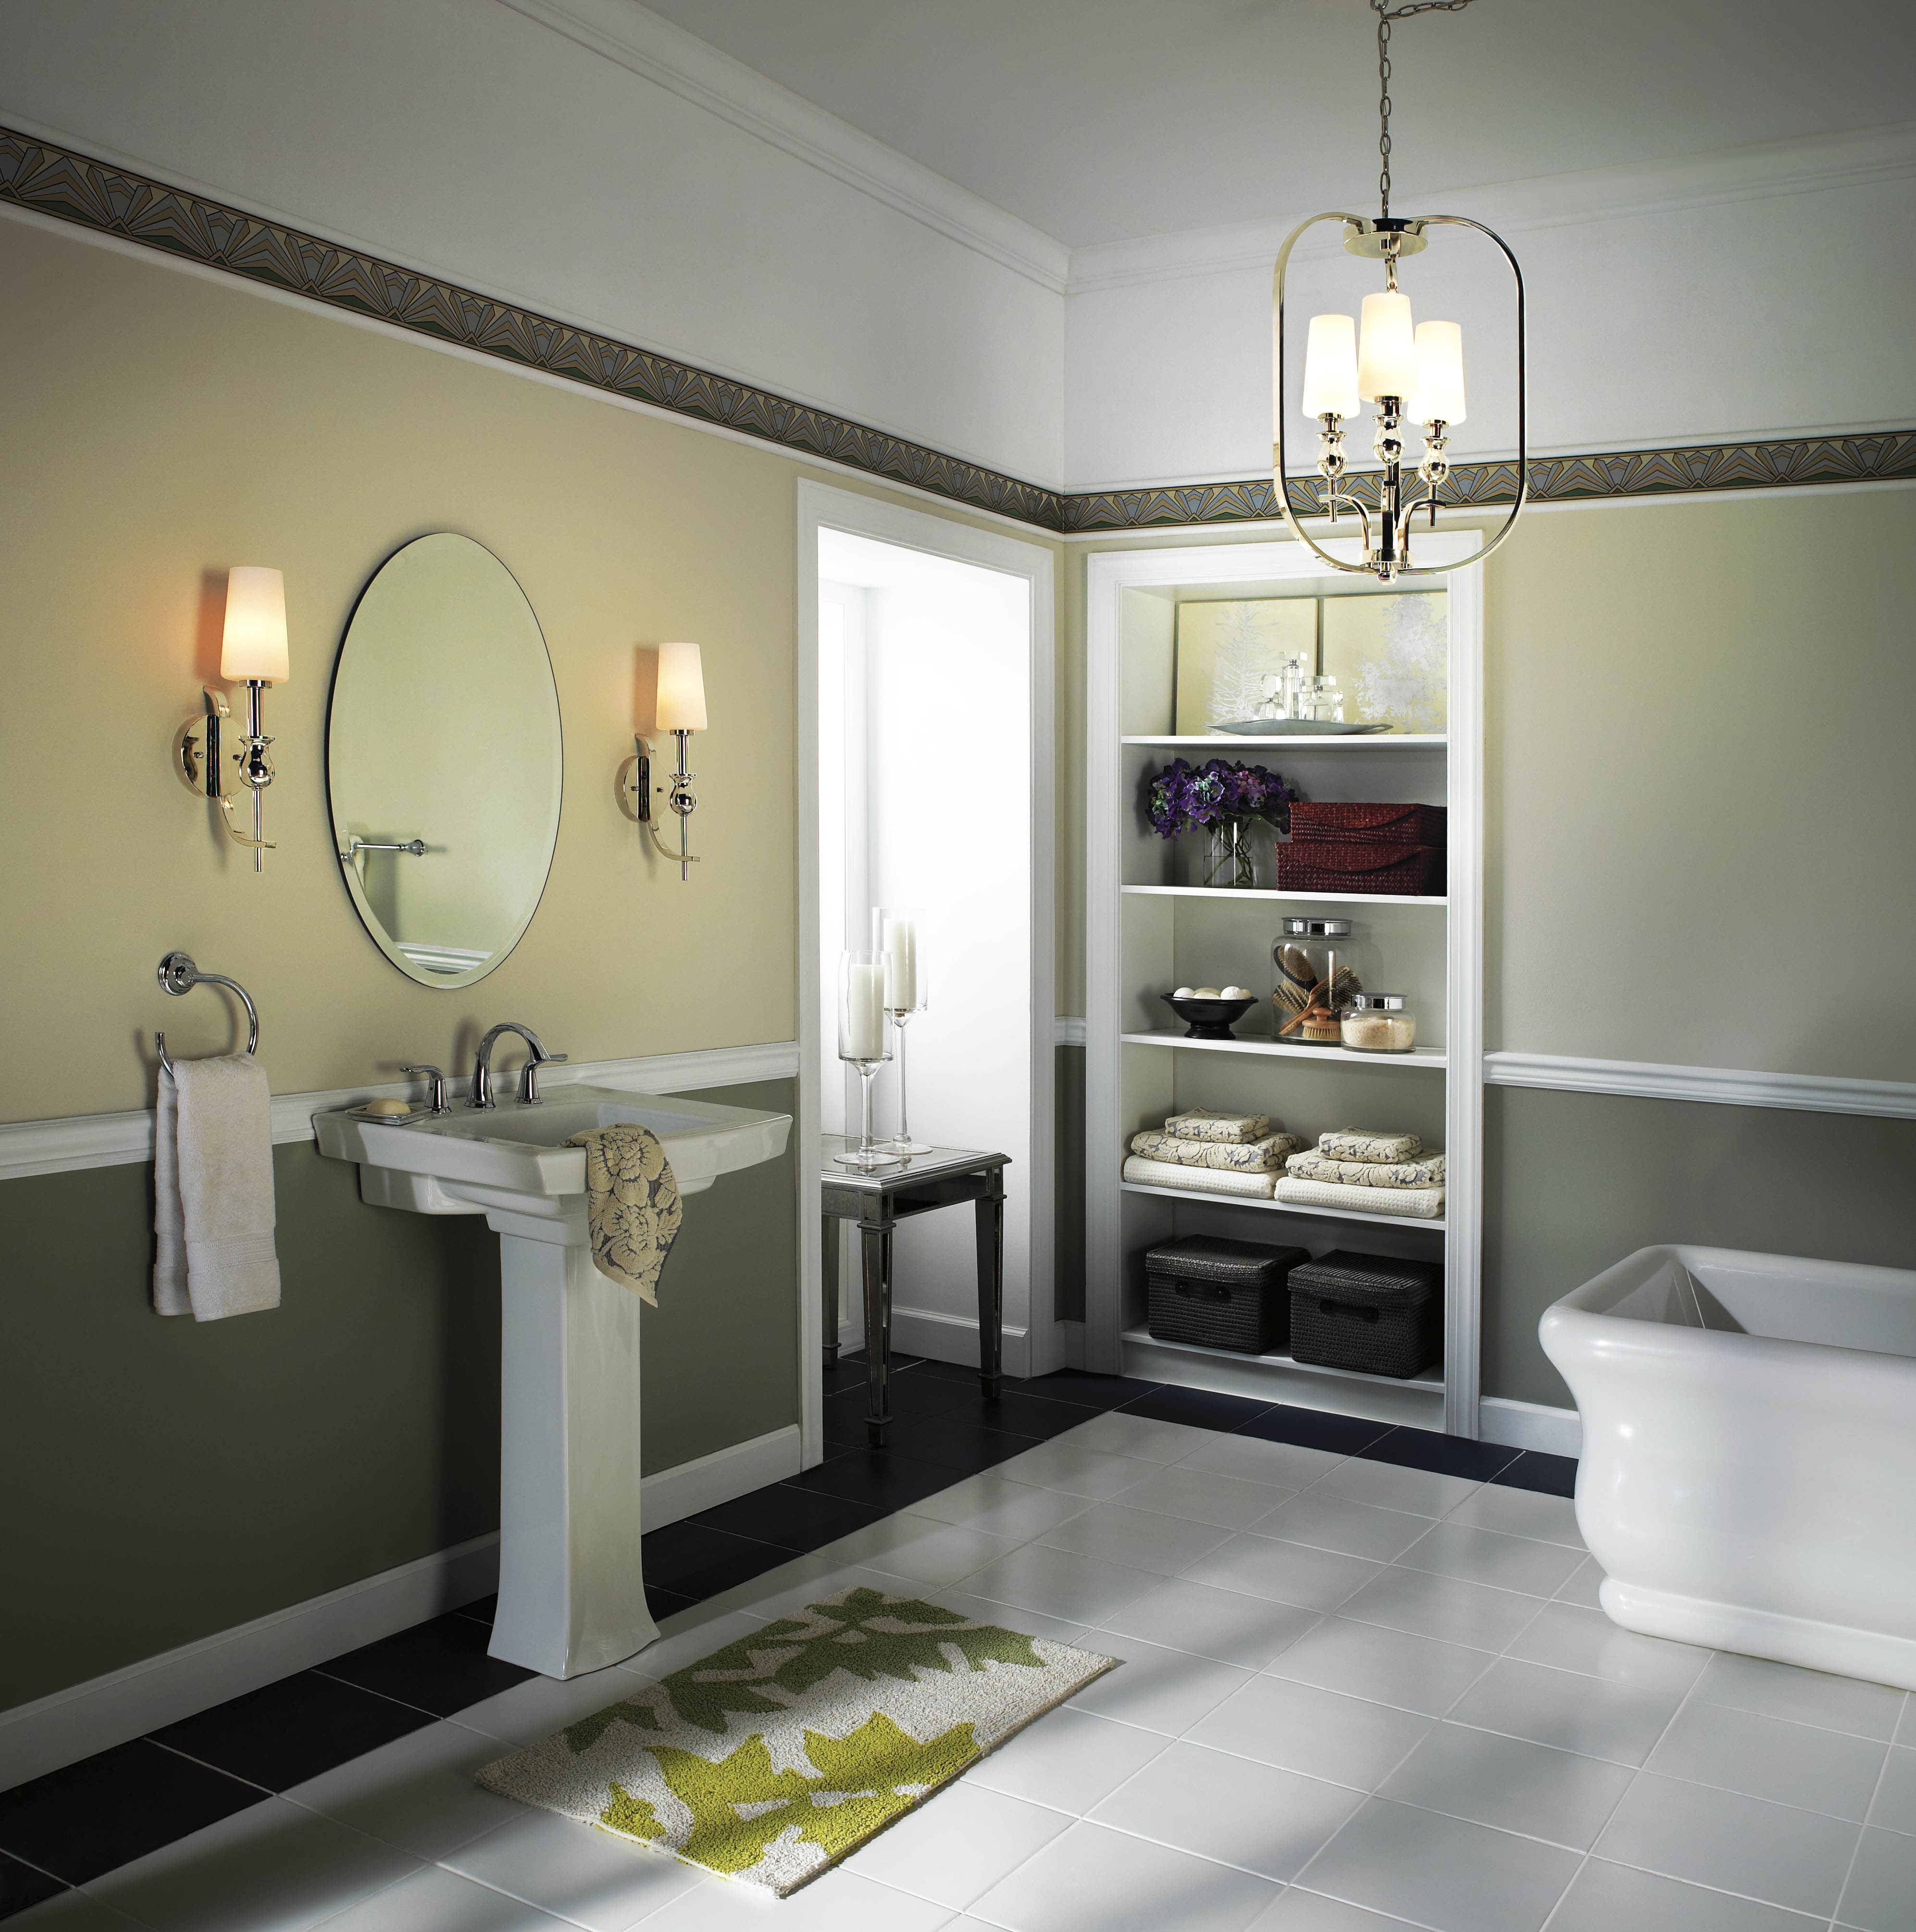 Bathroom Chandelier Ideas For Lowes Bathroom Lighting In Modern Bathroom Chandelier Lighting (Image 2 of 25)